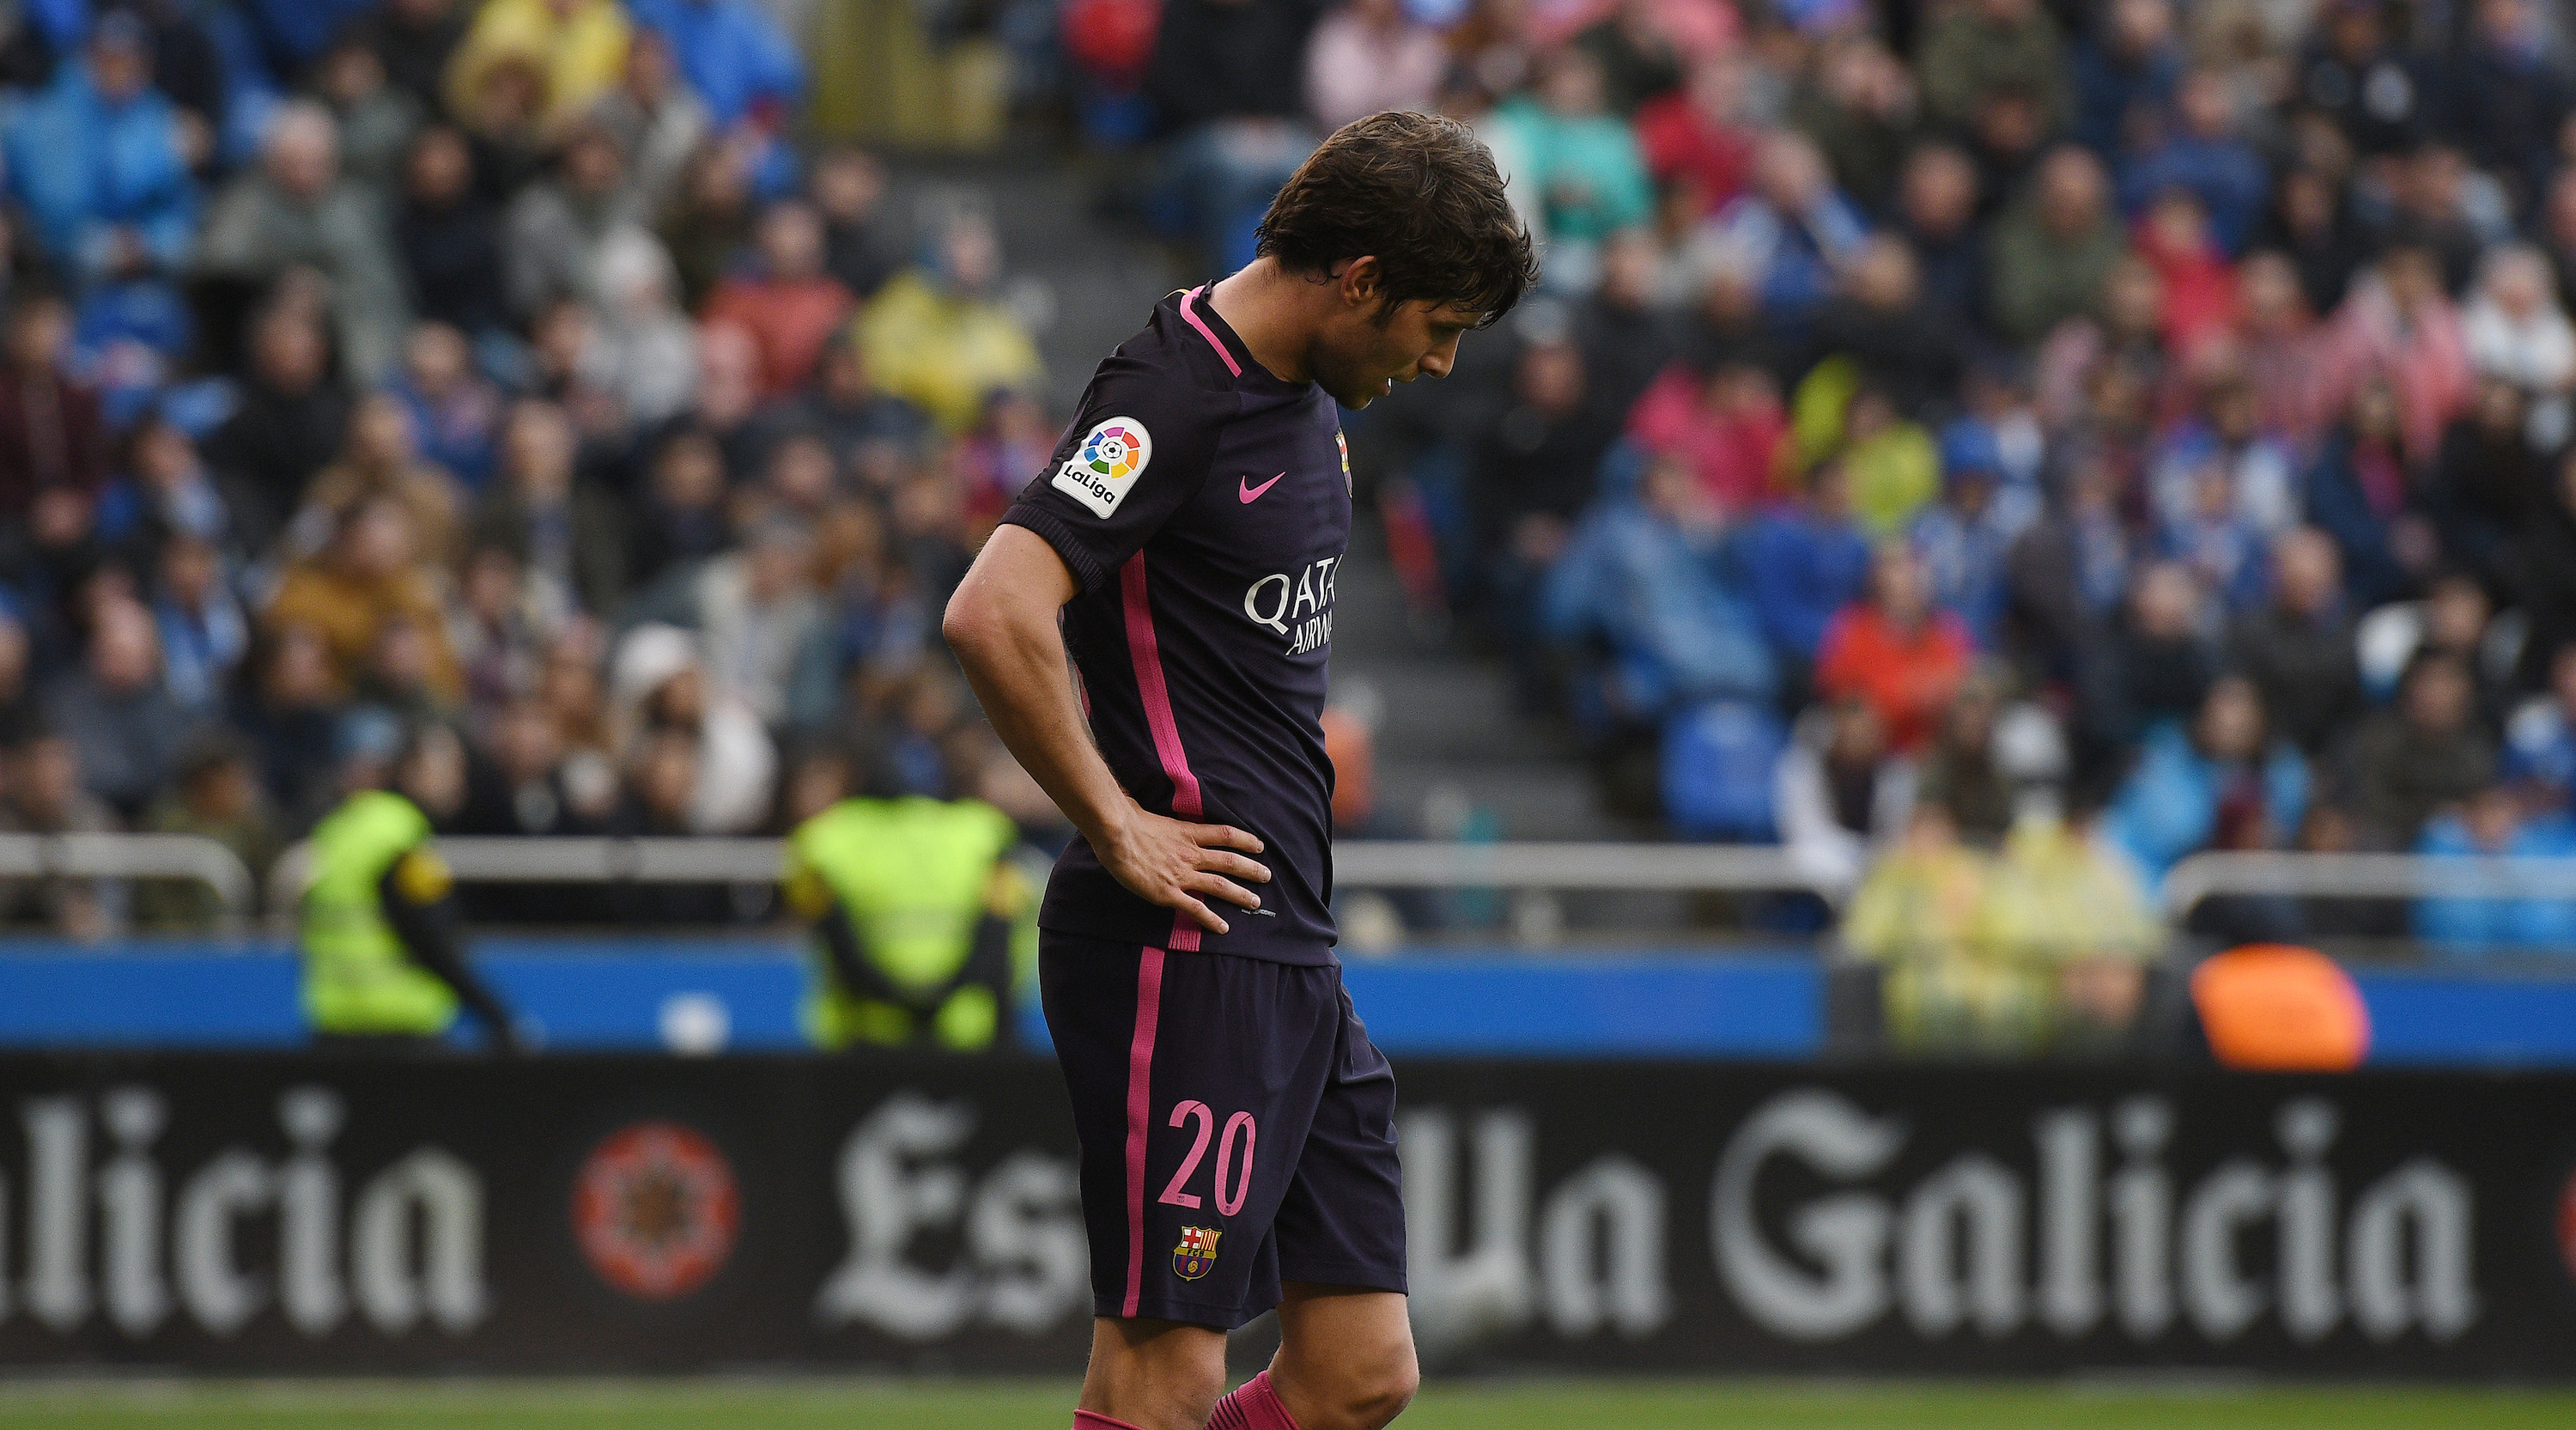 LA CORUNA, SPAIN - MARCH 12: Sergi Roberto of FC Barcelona reacts during the La Liga match between RC Deportivo La Coruna and FC Barcelona at Riazor Stadium on March 12, 2017 in La Coruna, Spain. (Photo by Octavio Passos/Getty Images)